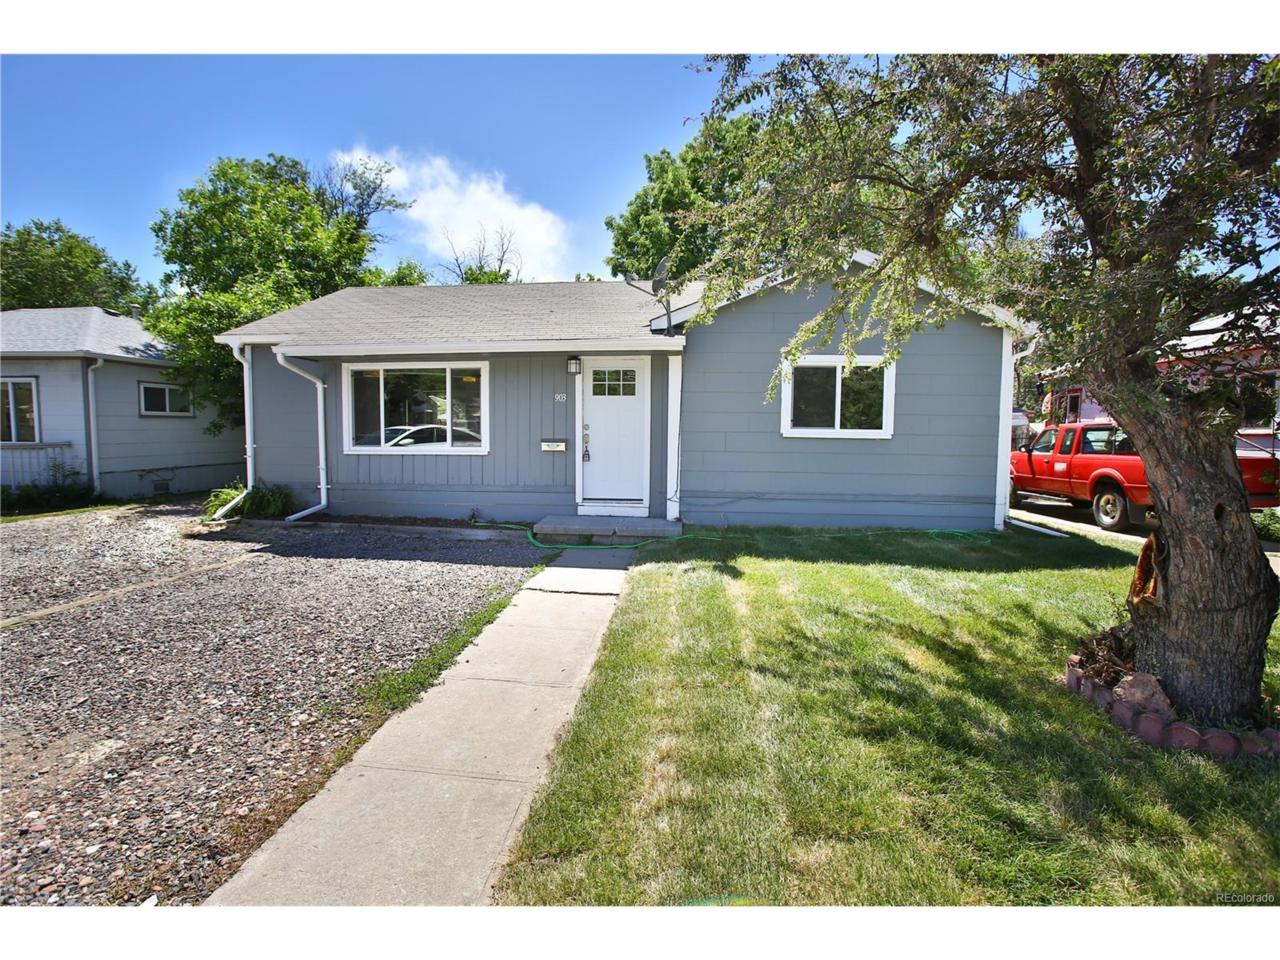 903 Havana Street, Aurora, CO 80010 (MLS #8239638) :: 8z Real Estate